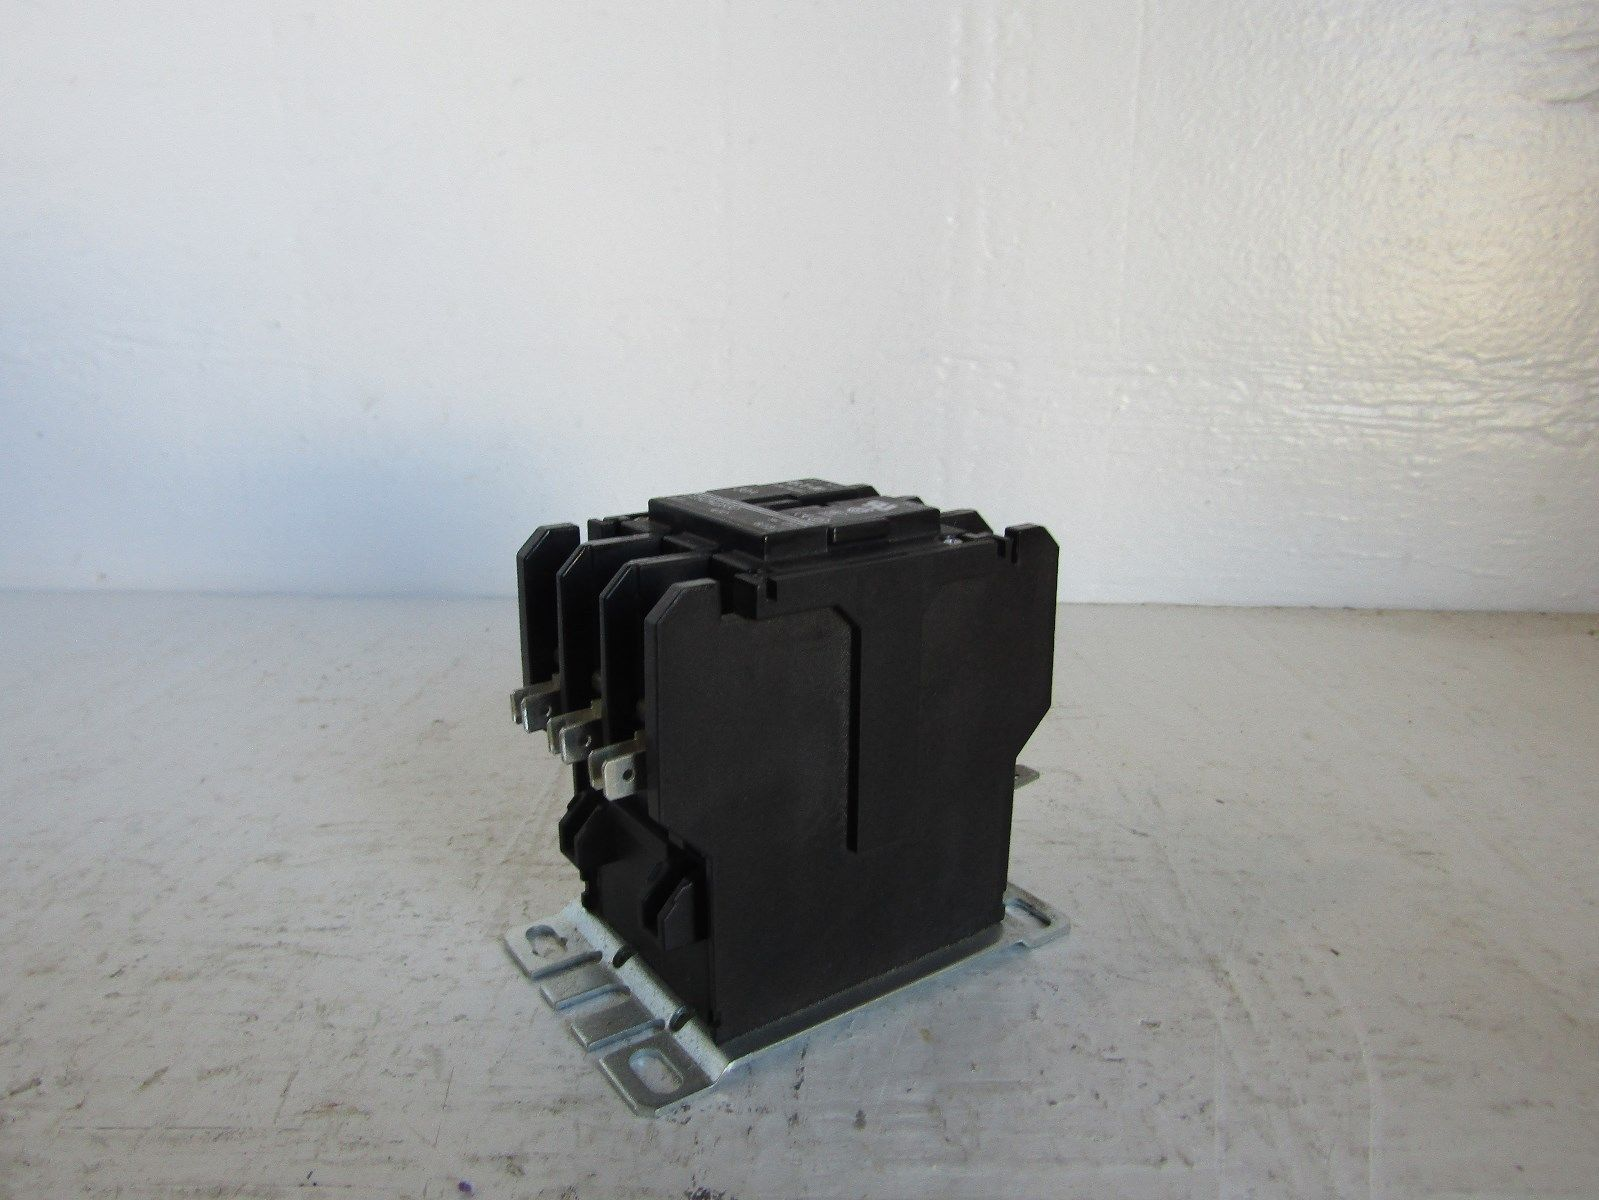 CUTLER HAMMER C25DND330 30 AMP 3 POLE CONTACTOR 120 VOLT COIL 331989252131 2?fit\=1000%2C750\&ssl\=1 c25dnd330 wiring diagram 3 phase contactor wiring diagram start Eaton C25dnf340 Contactor at gsmx.co